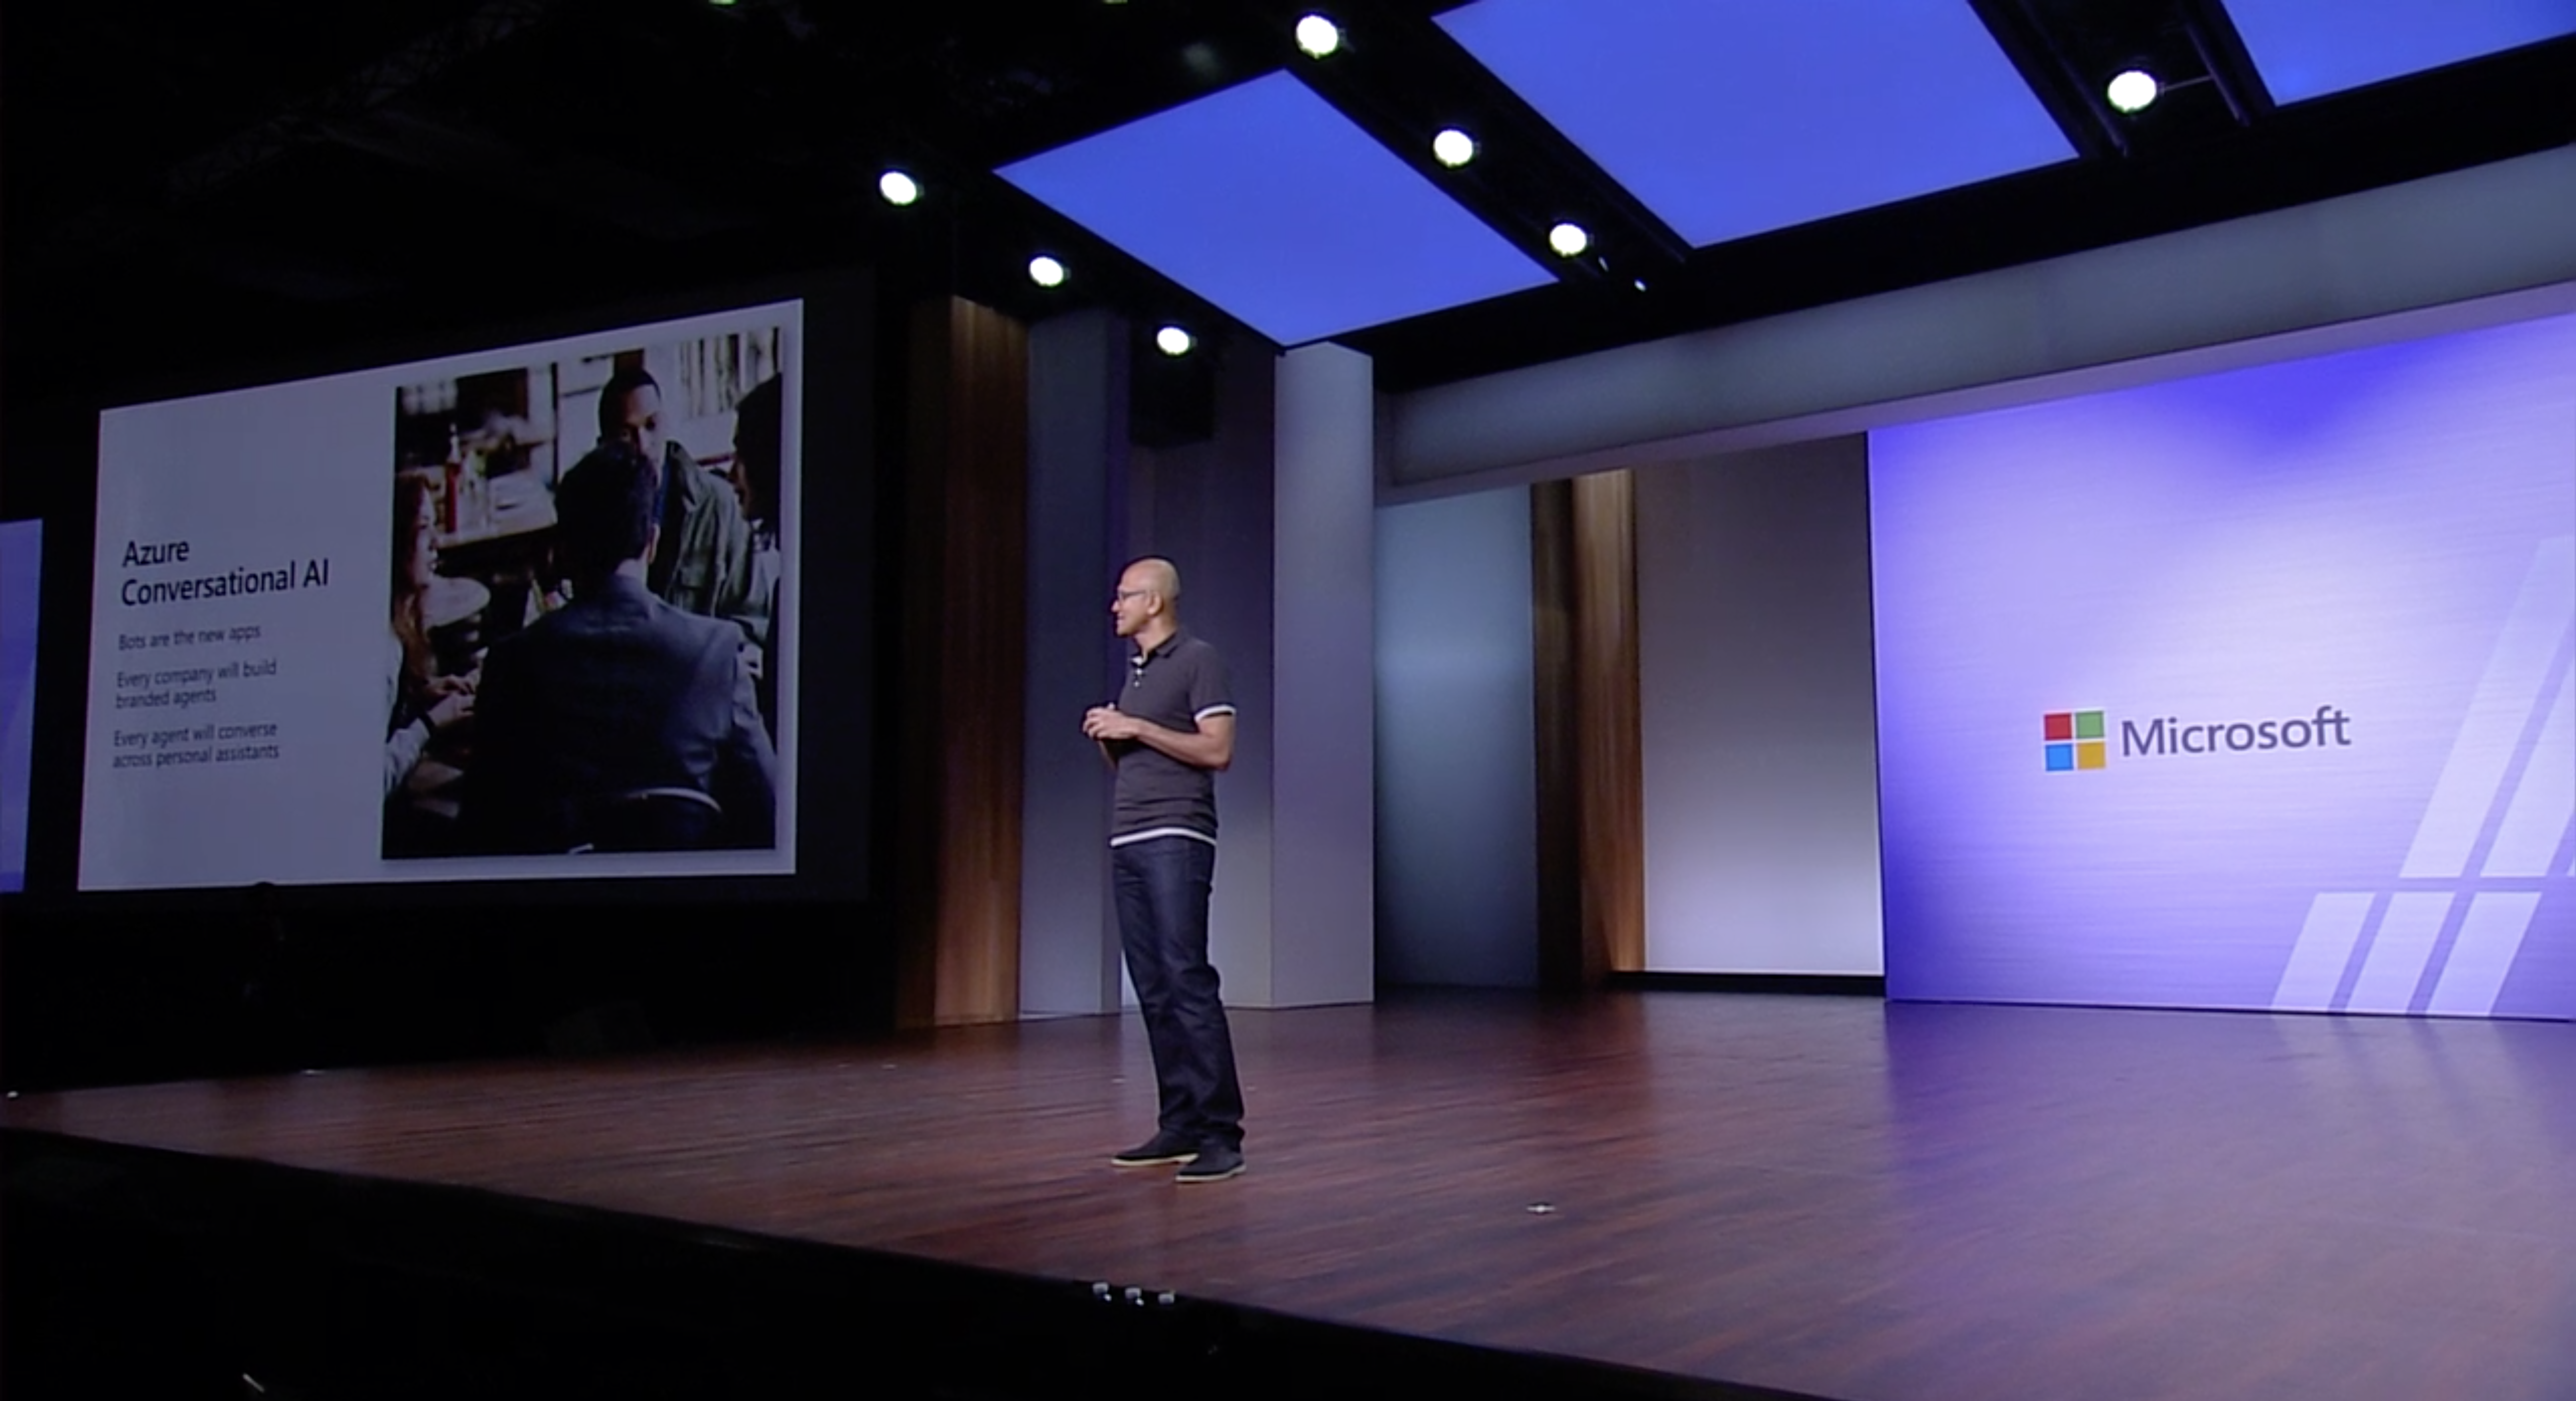 Microsoft Unveils Two Windows 10 iOS Apps at its Build Conference